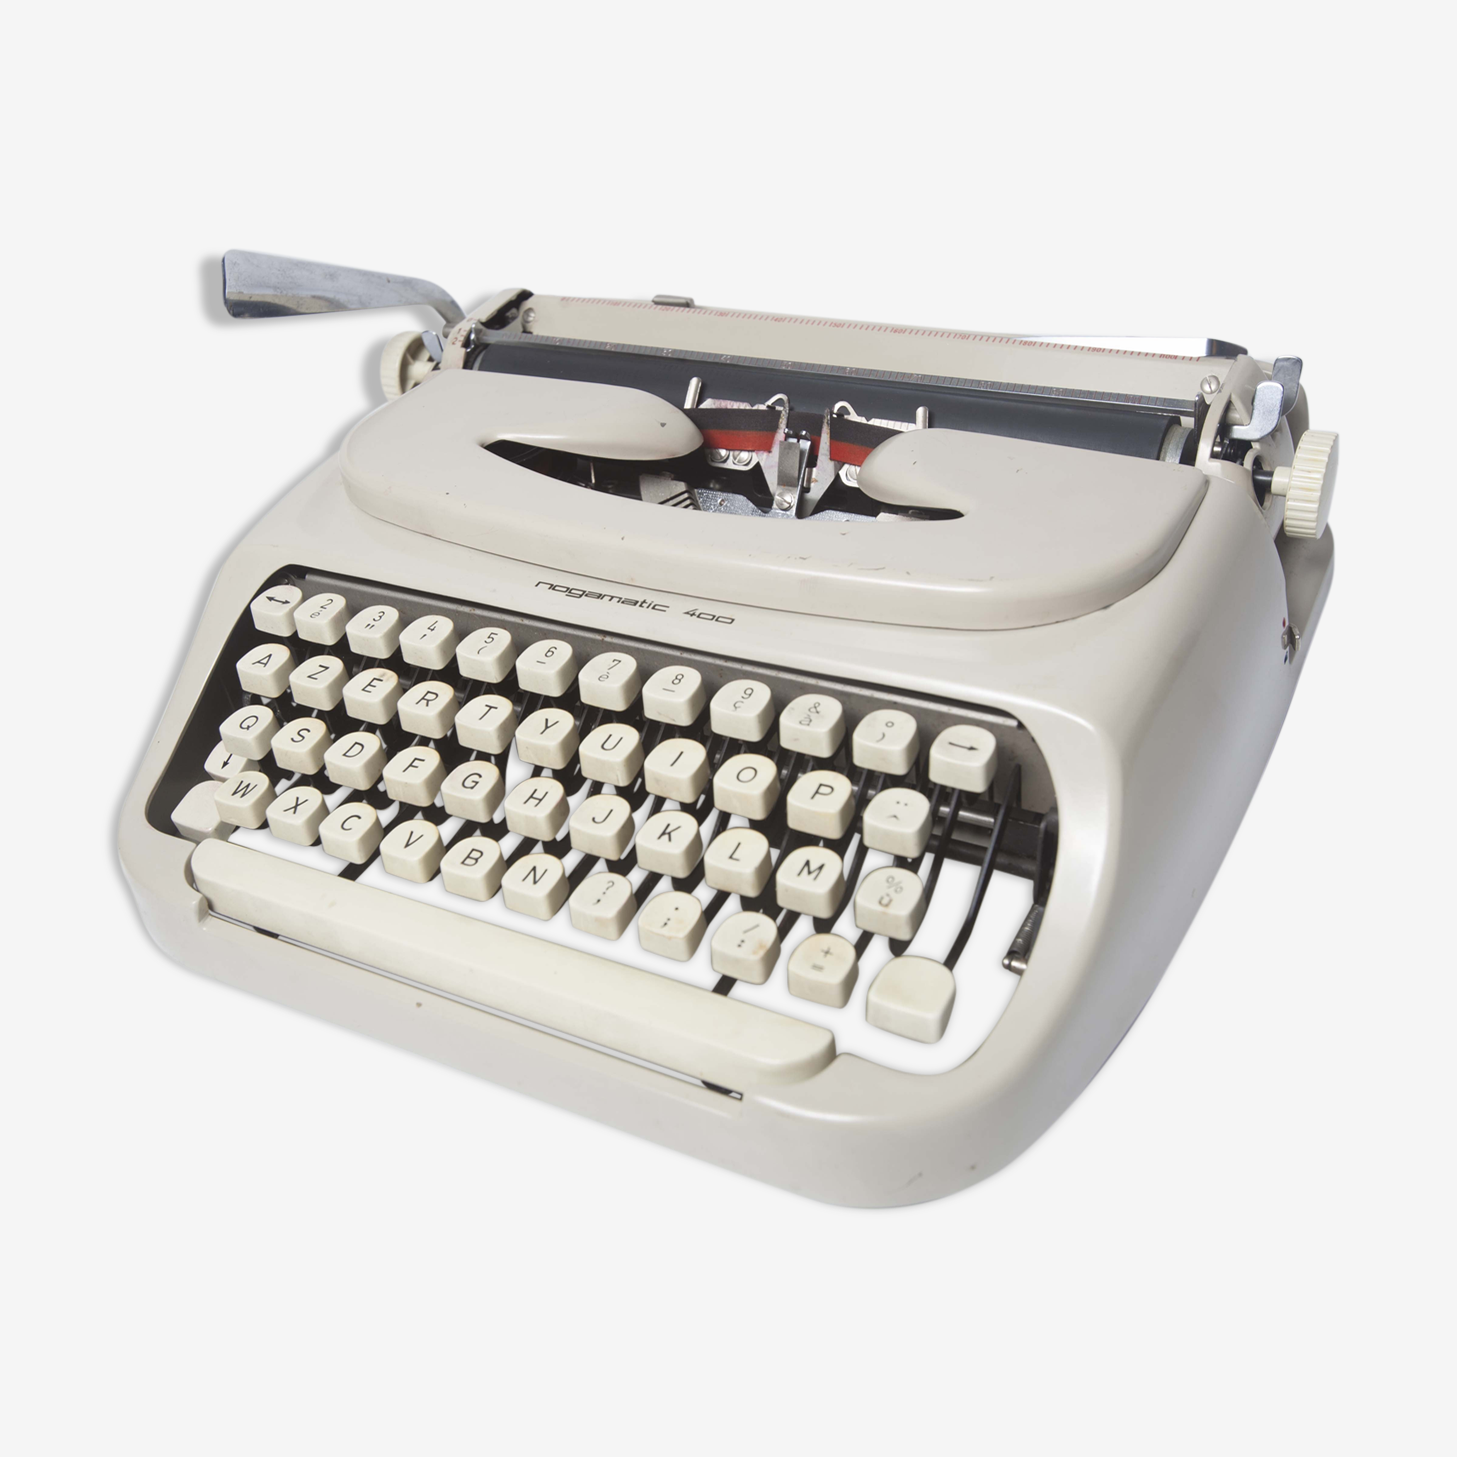 Typewriter Nogamatic 400 1960 holland